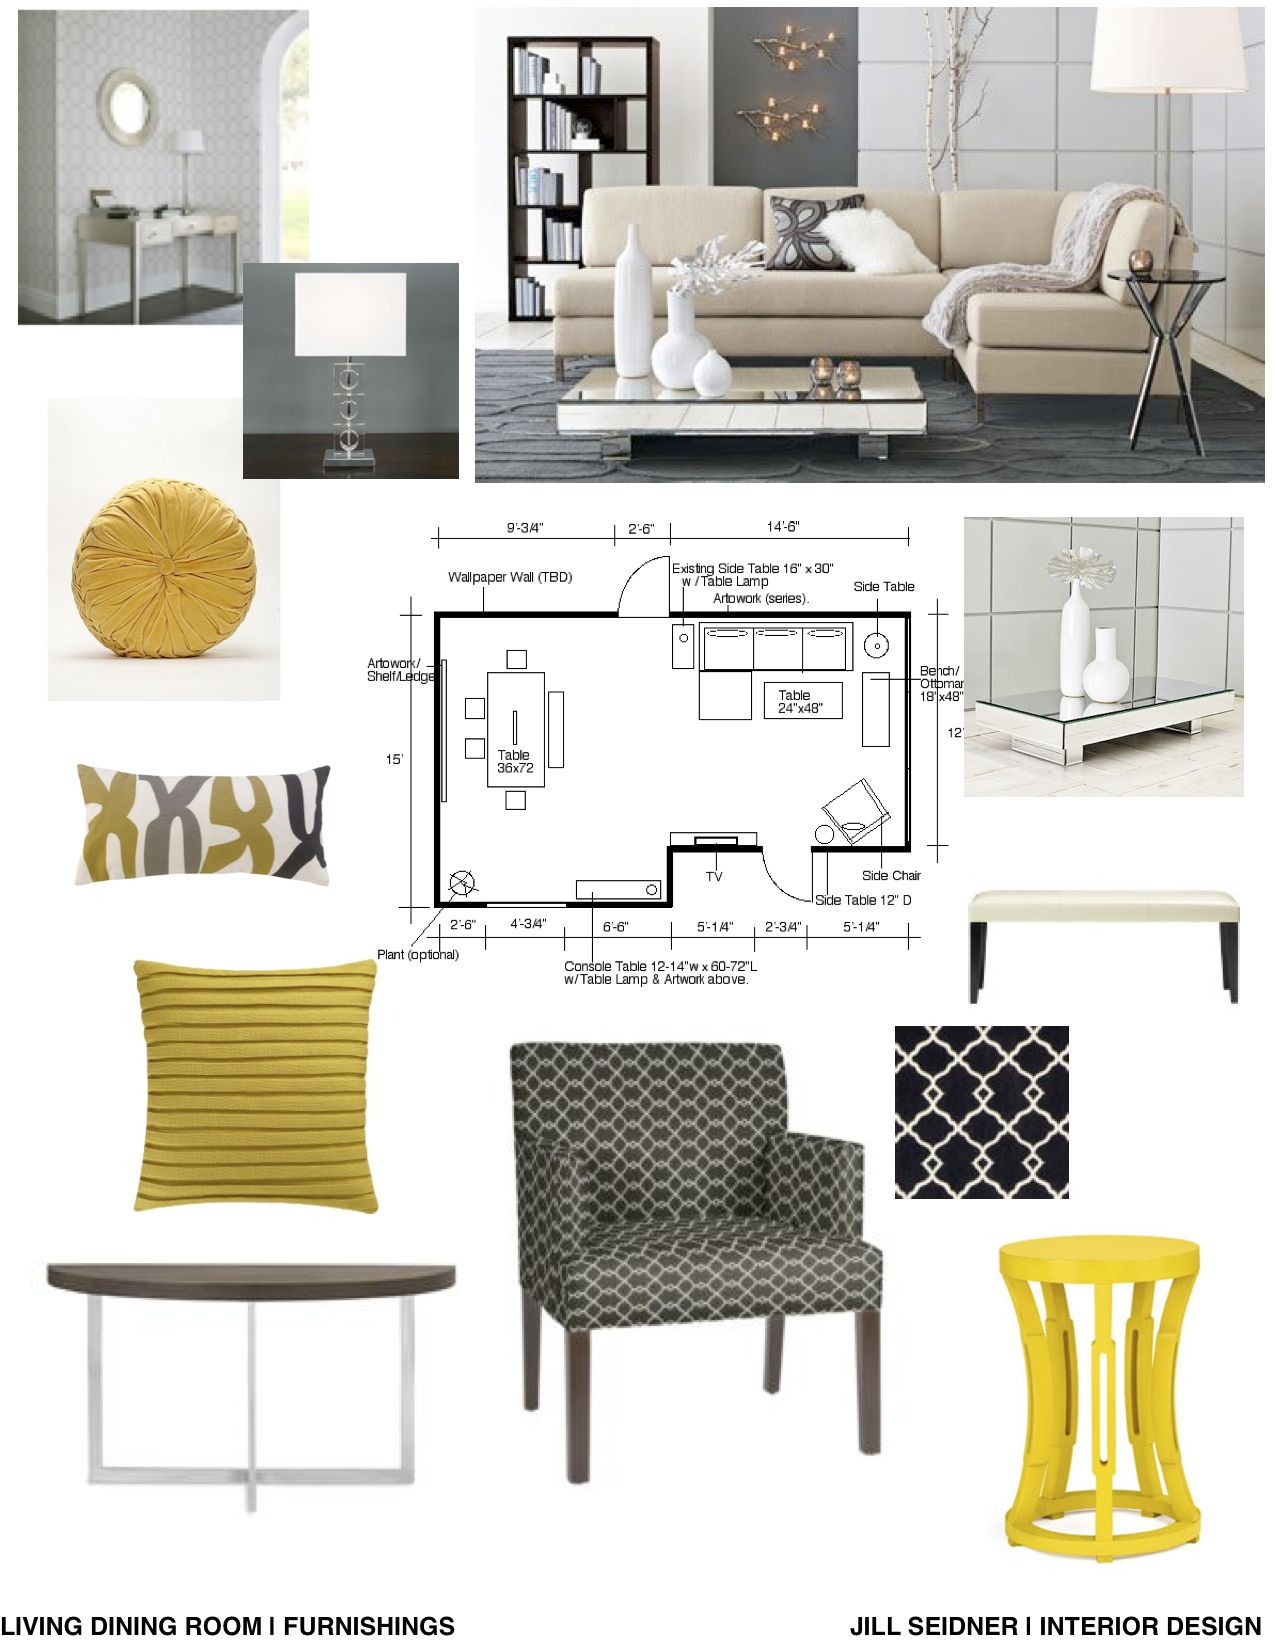 Design Interieur Concept Concept Board For An Apartment Living And Dining Room